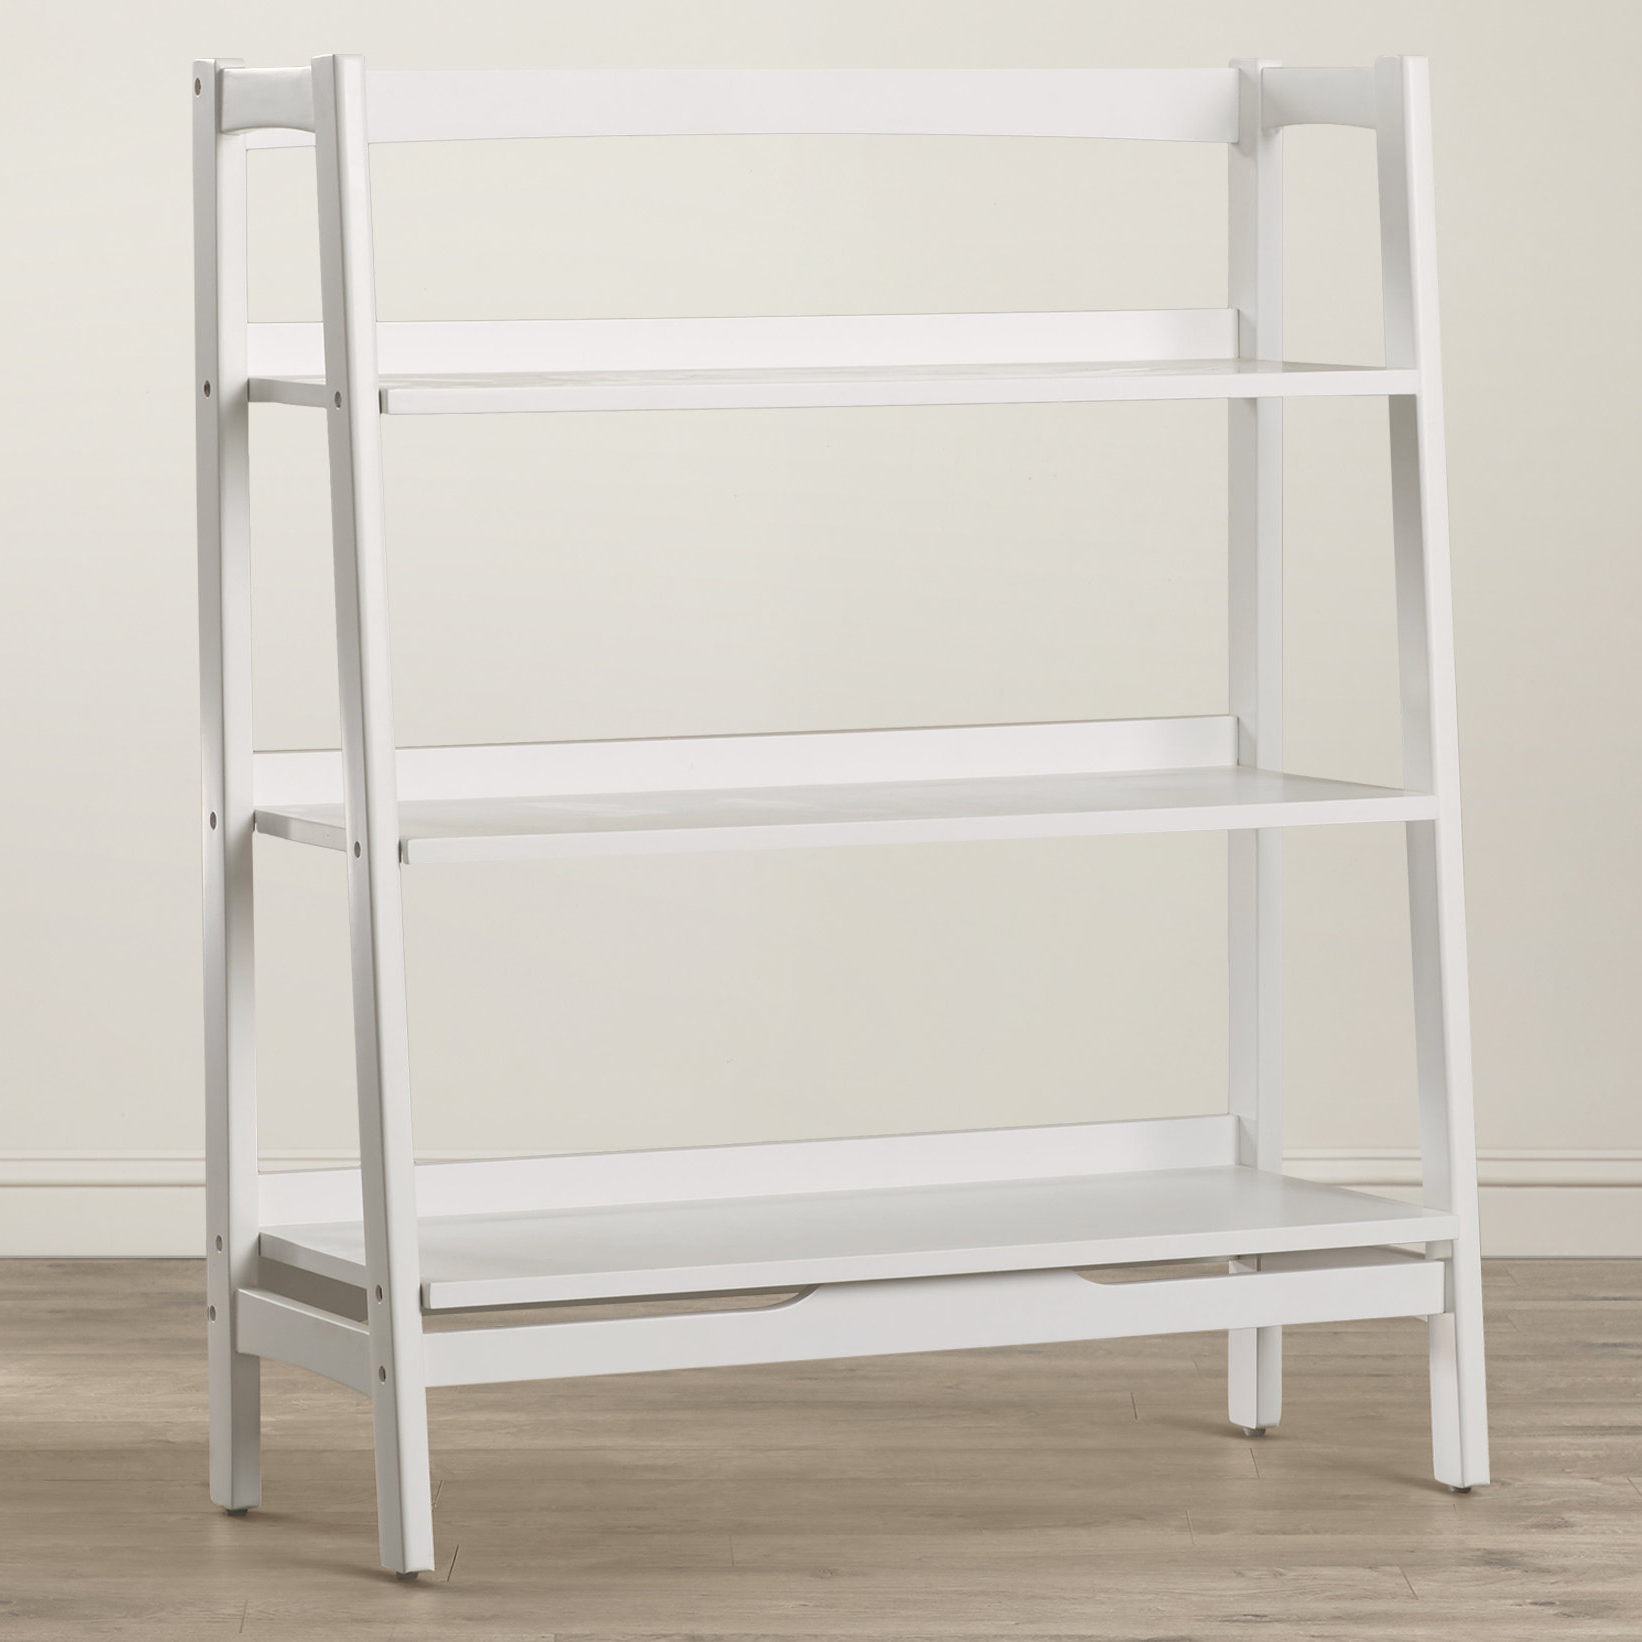 Destiny Etagere Bookcase With Most Current Destiny Etagere Bookcases (Gallery 6 of 20)